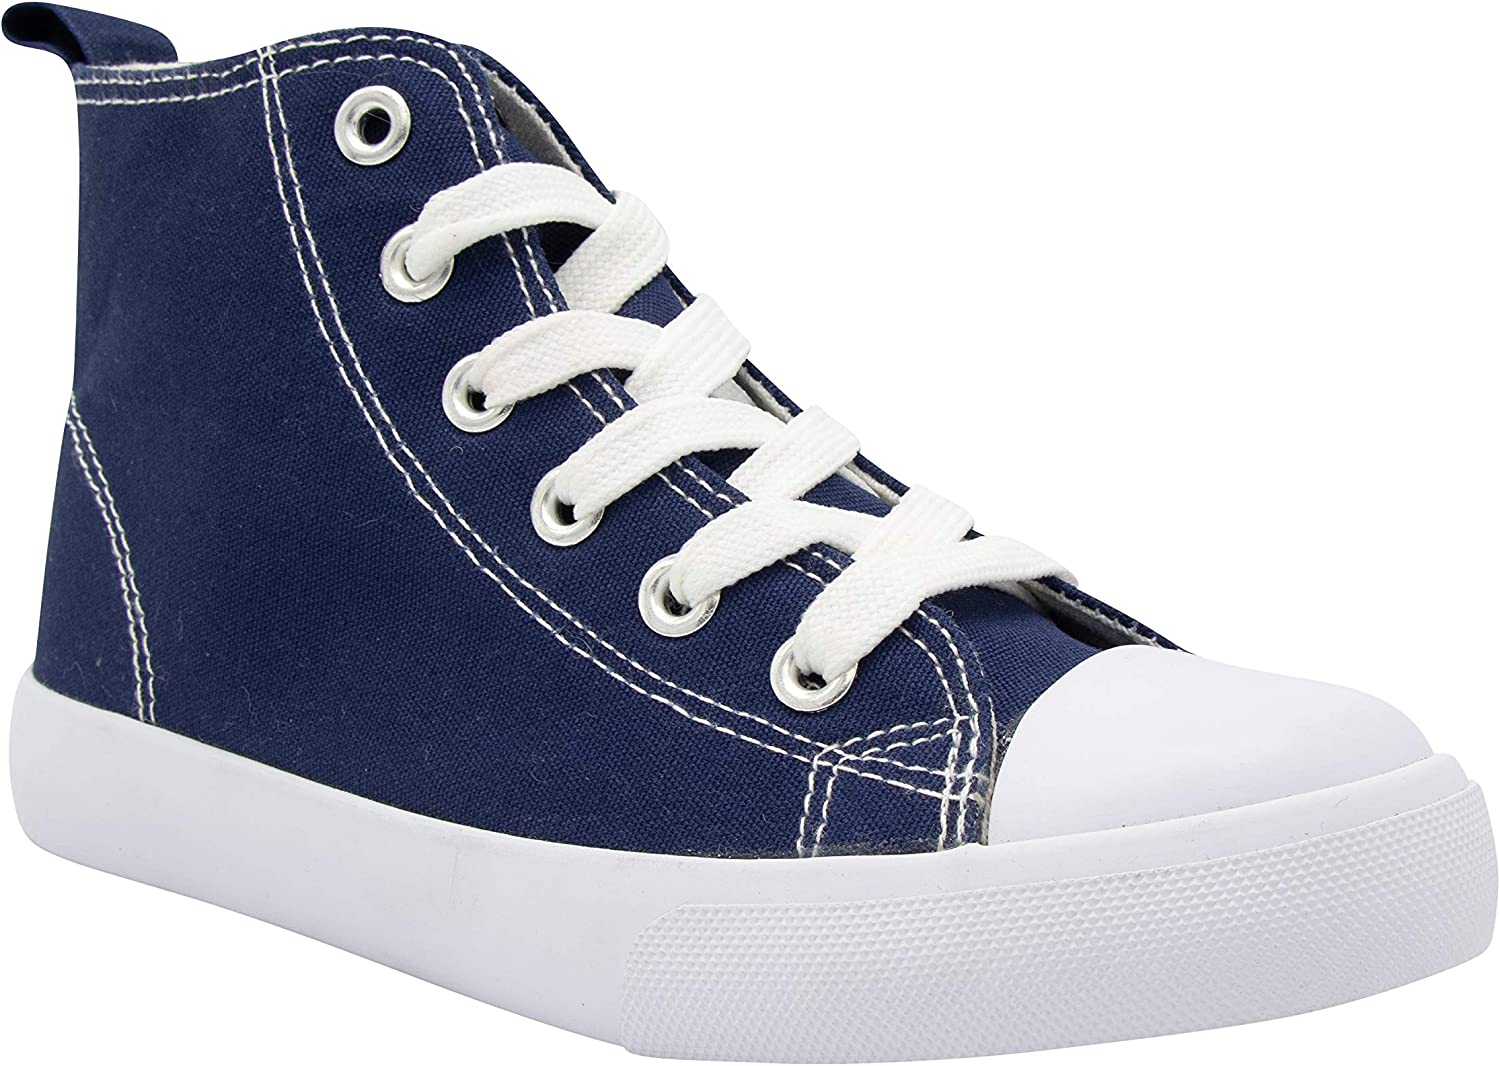 ZOOGS Fashion High-Top Canvas Sneakers